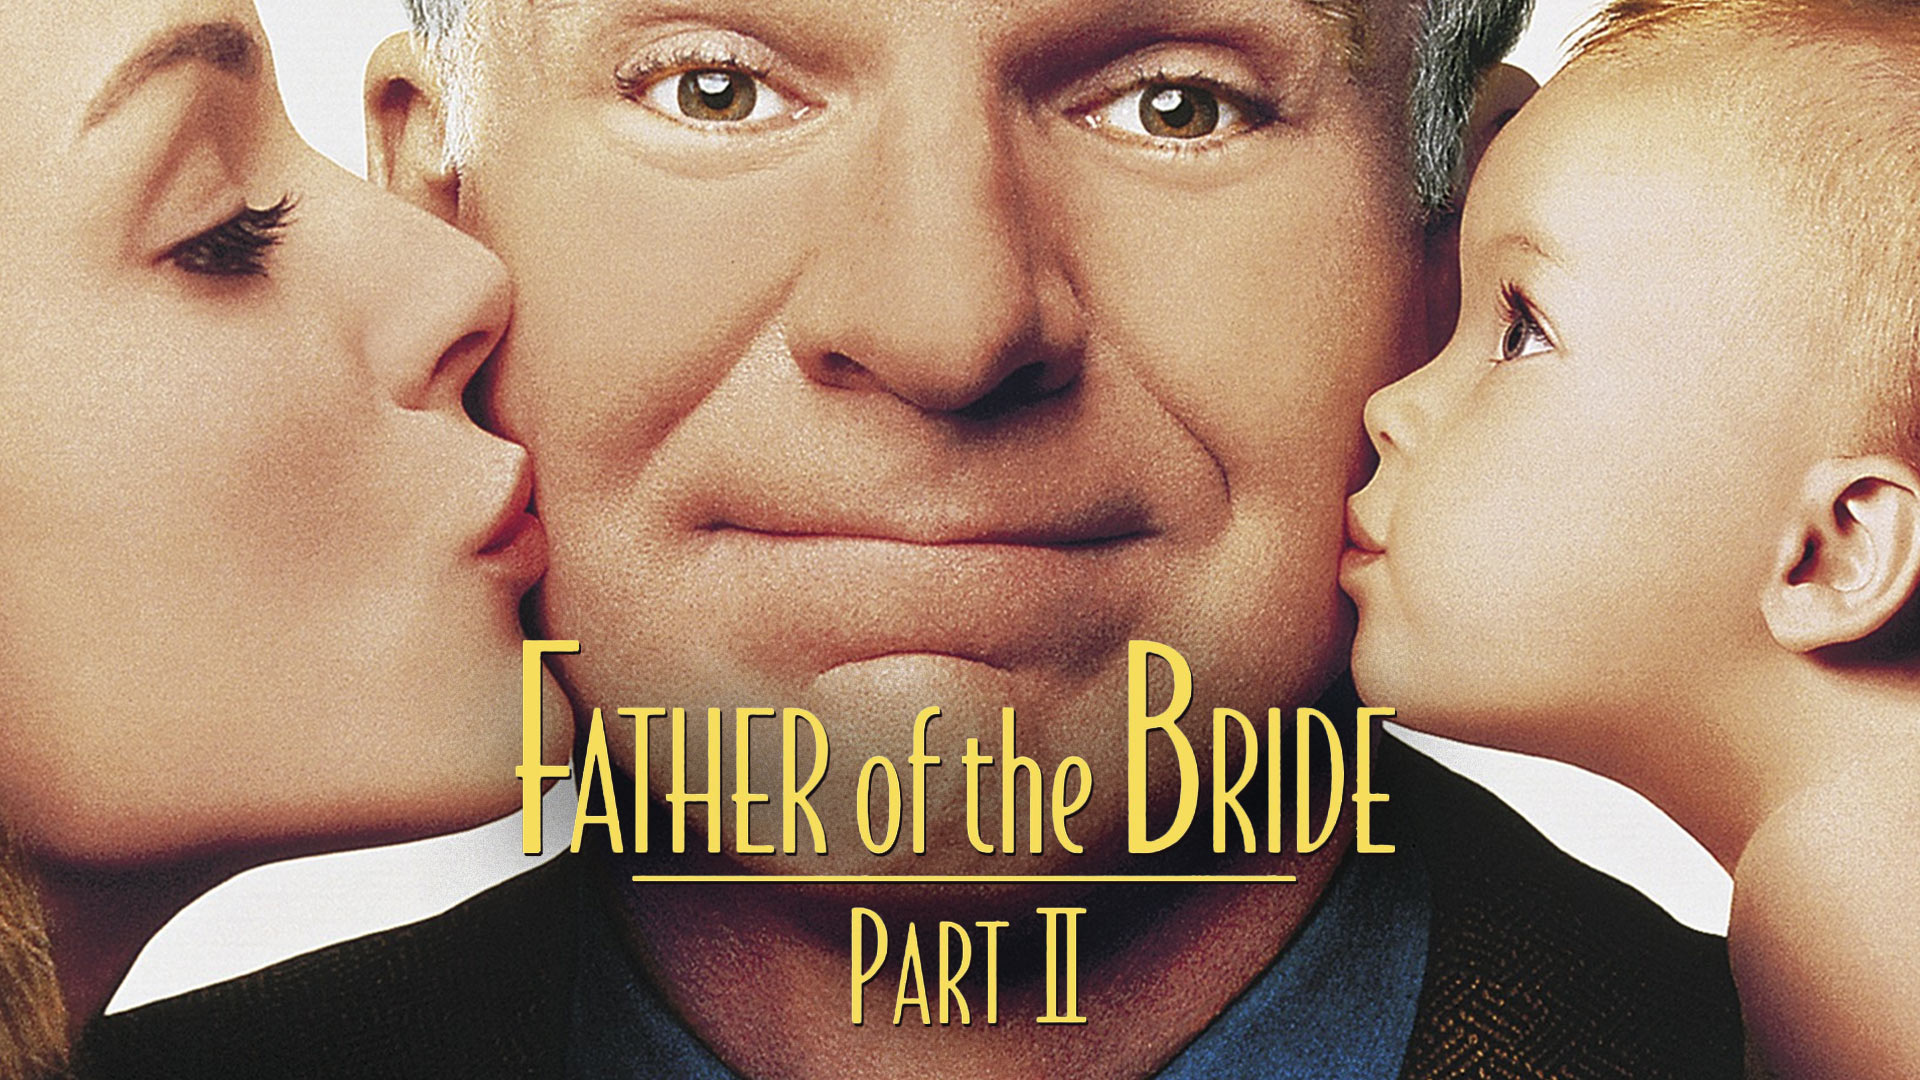 Father of the Bride Part II (Theatrical Version)